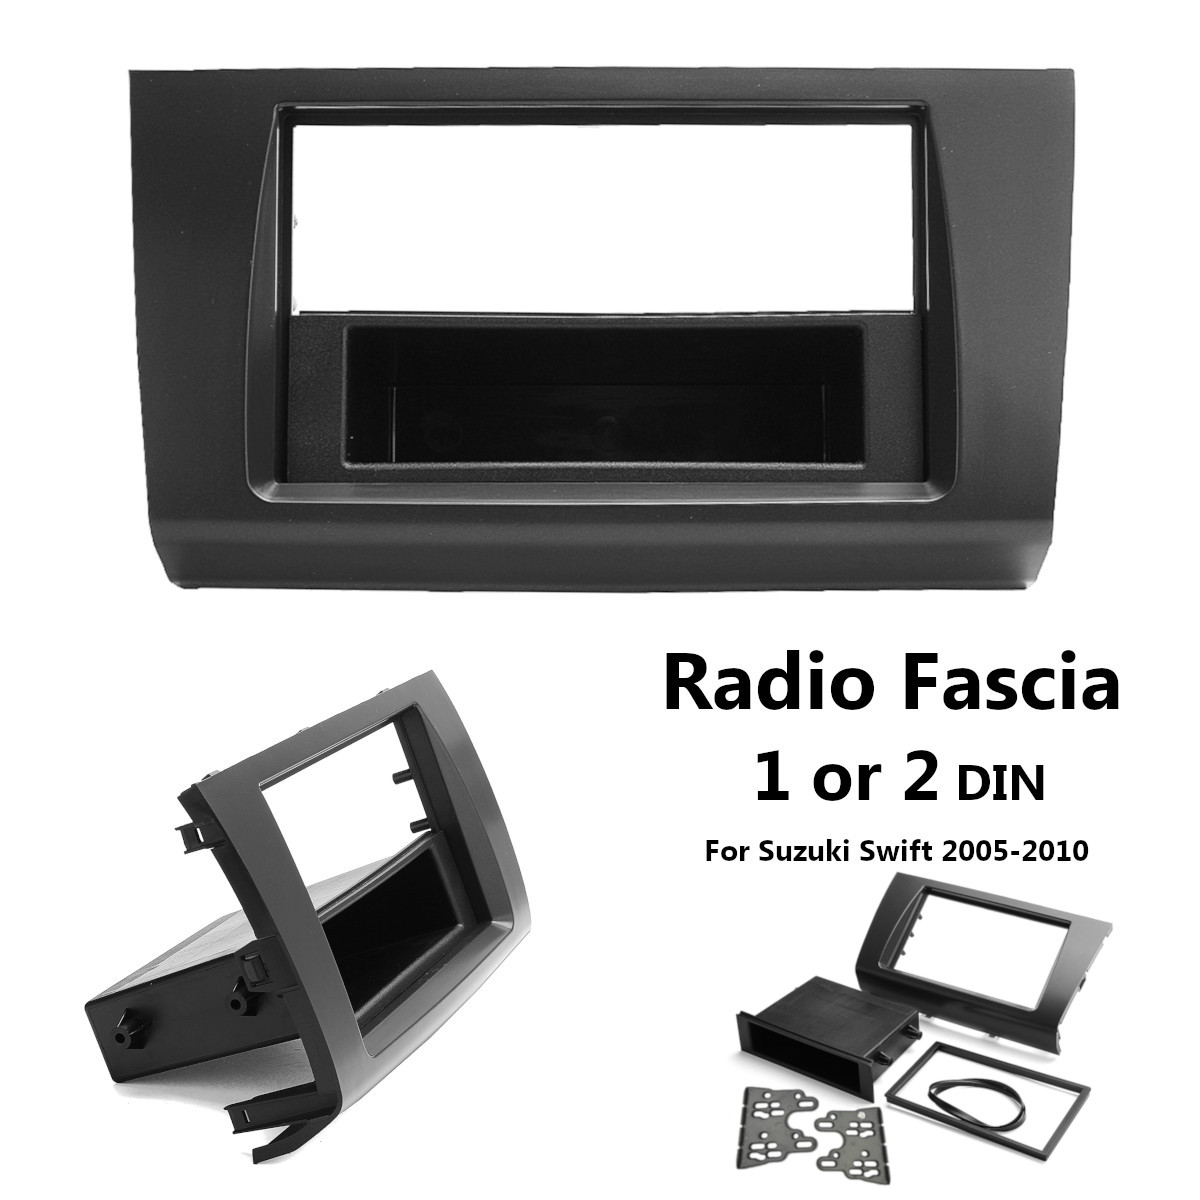 1 or 2 Din Car Stereo Radio Fascia Panel Plate Frame DVD CD Panel Audio GPS Dash Mount Kit Adapter for Suzuki Swift 2005 - 2010 image